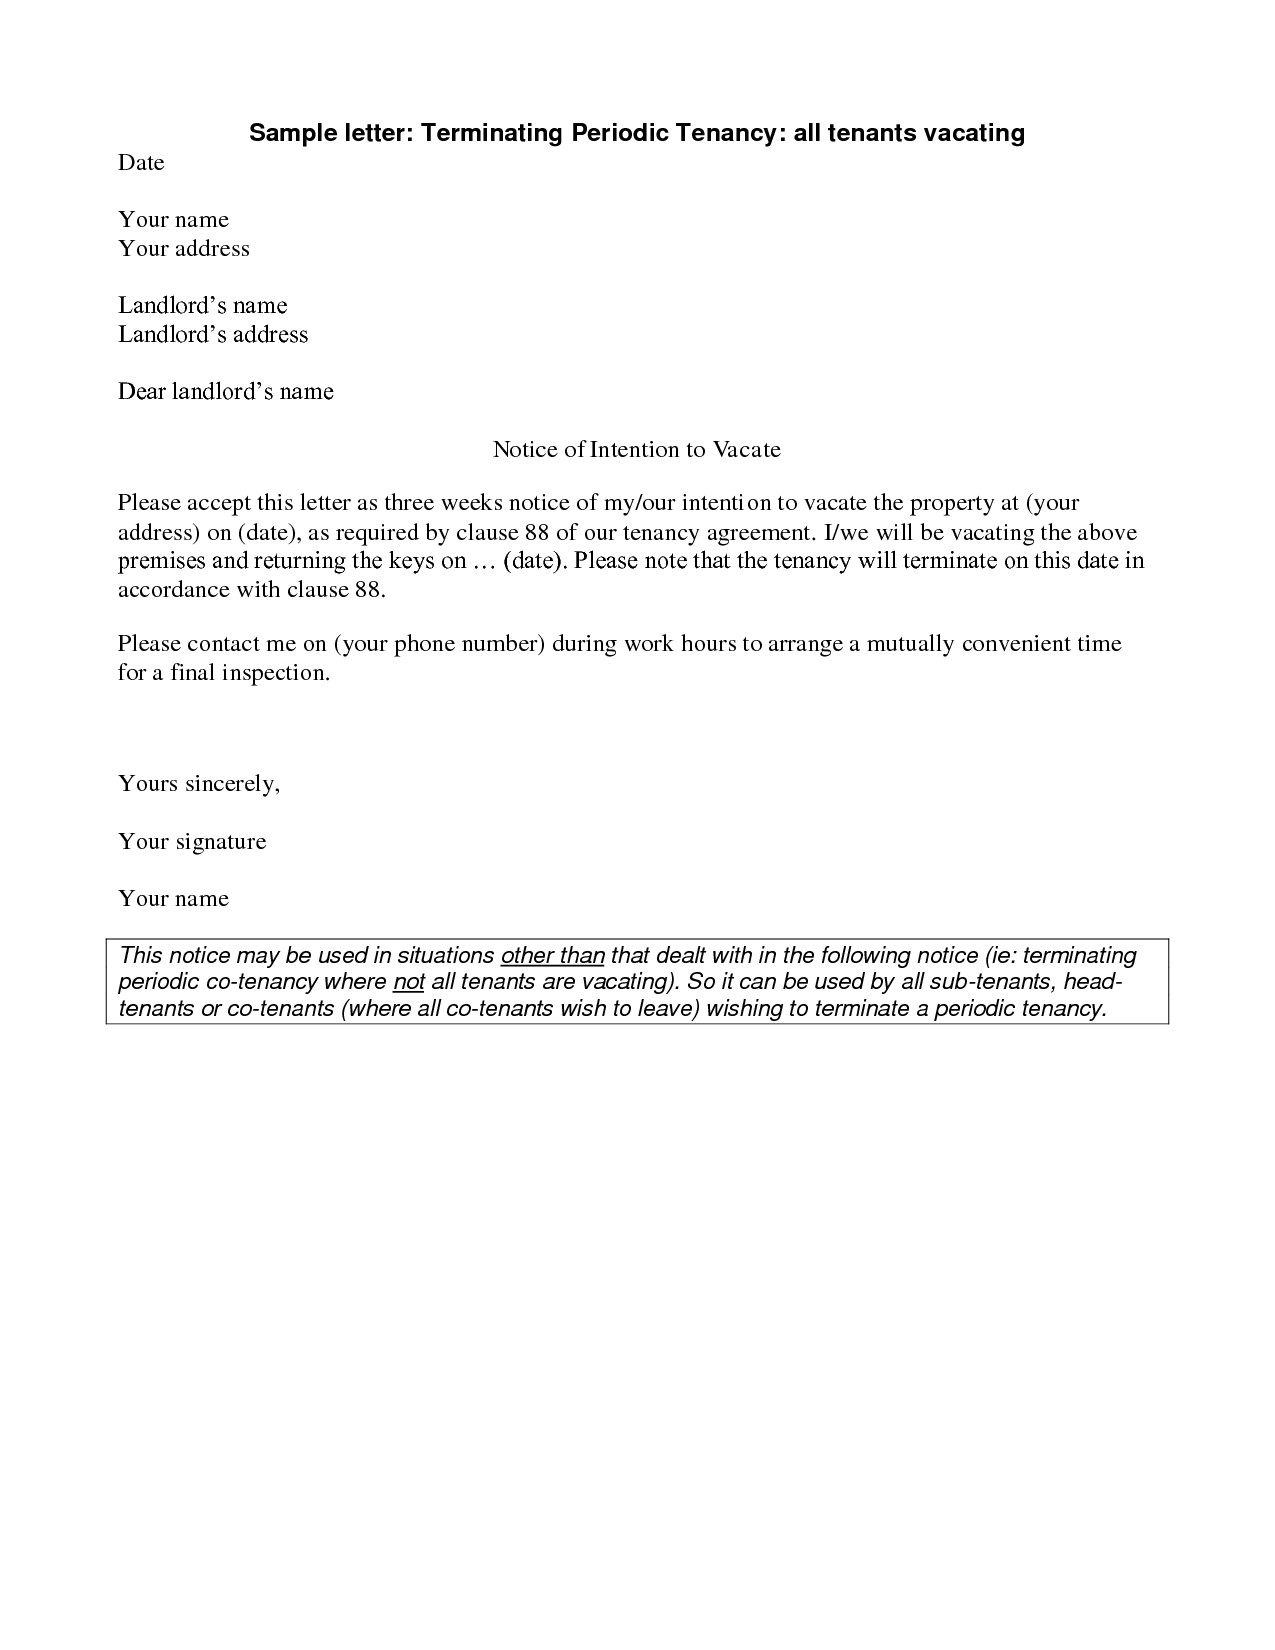 Giving Notice to Tenants Letter Template - Landlord End Tenancy Letter Template